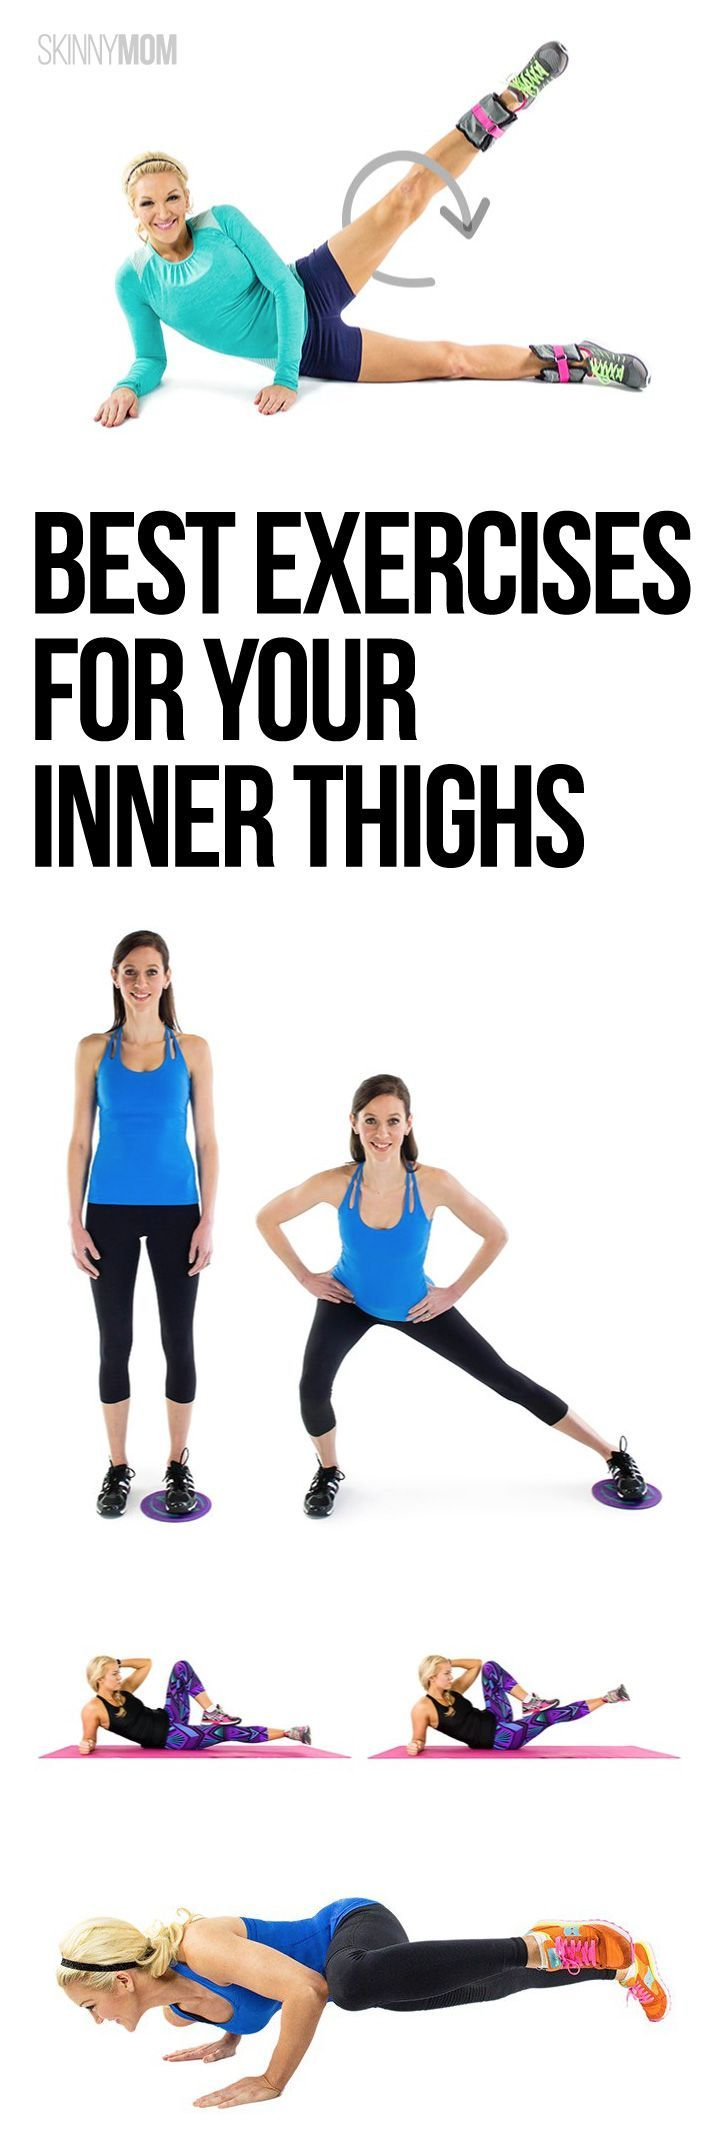 See more here ► https://www.youtube.com/watch?v=t6ic0NKYUMU Tags: lose belly fat in a day, tips to lose belly fat fast, what foods not to eat to lose belly fat - Work those thighs and get ready for summer shorts! #exercise #diet #workout #fitness #health